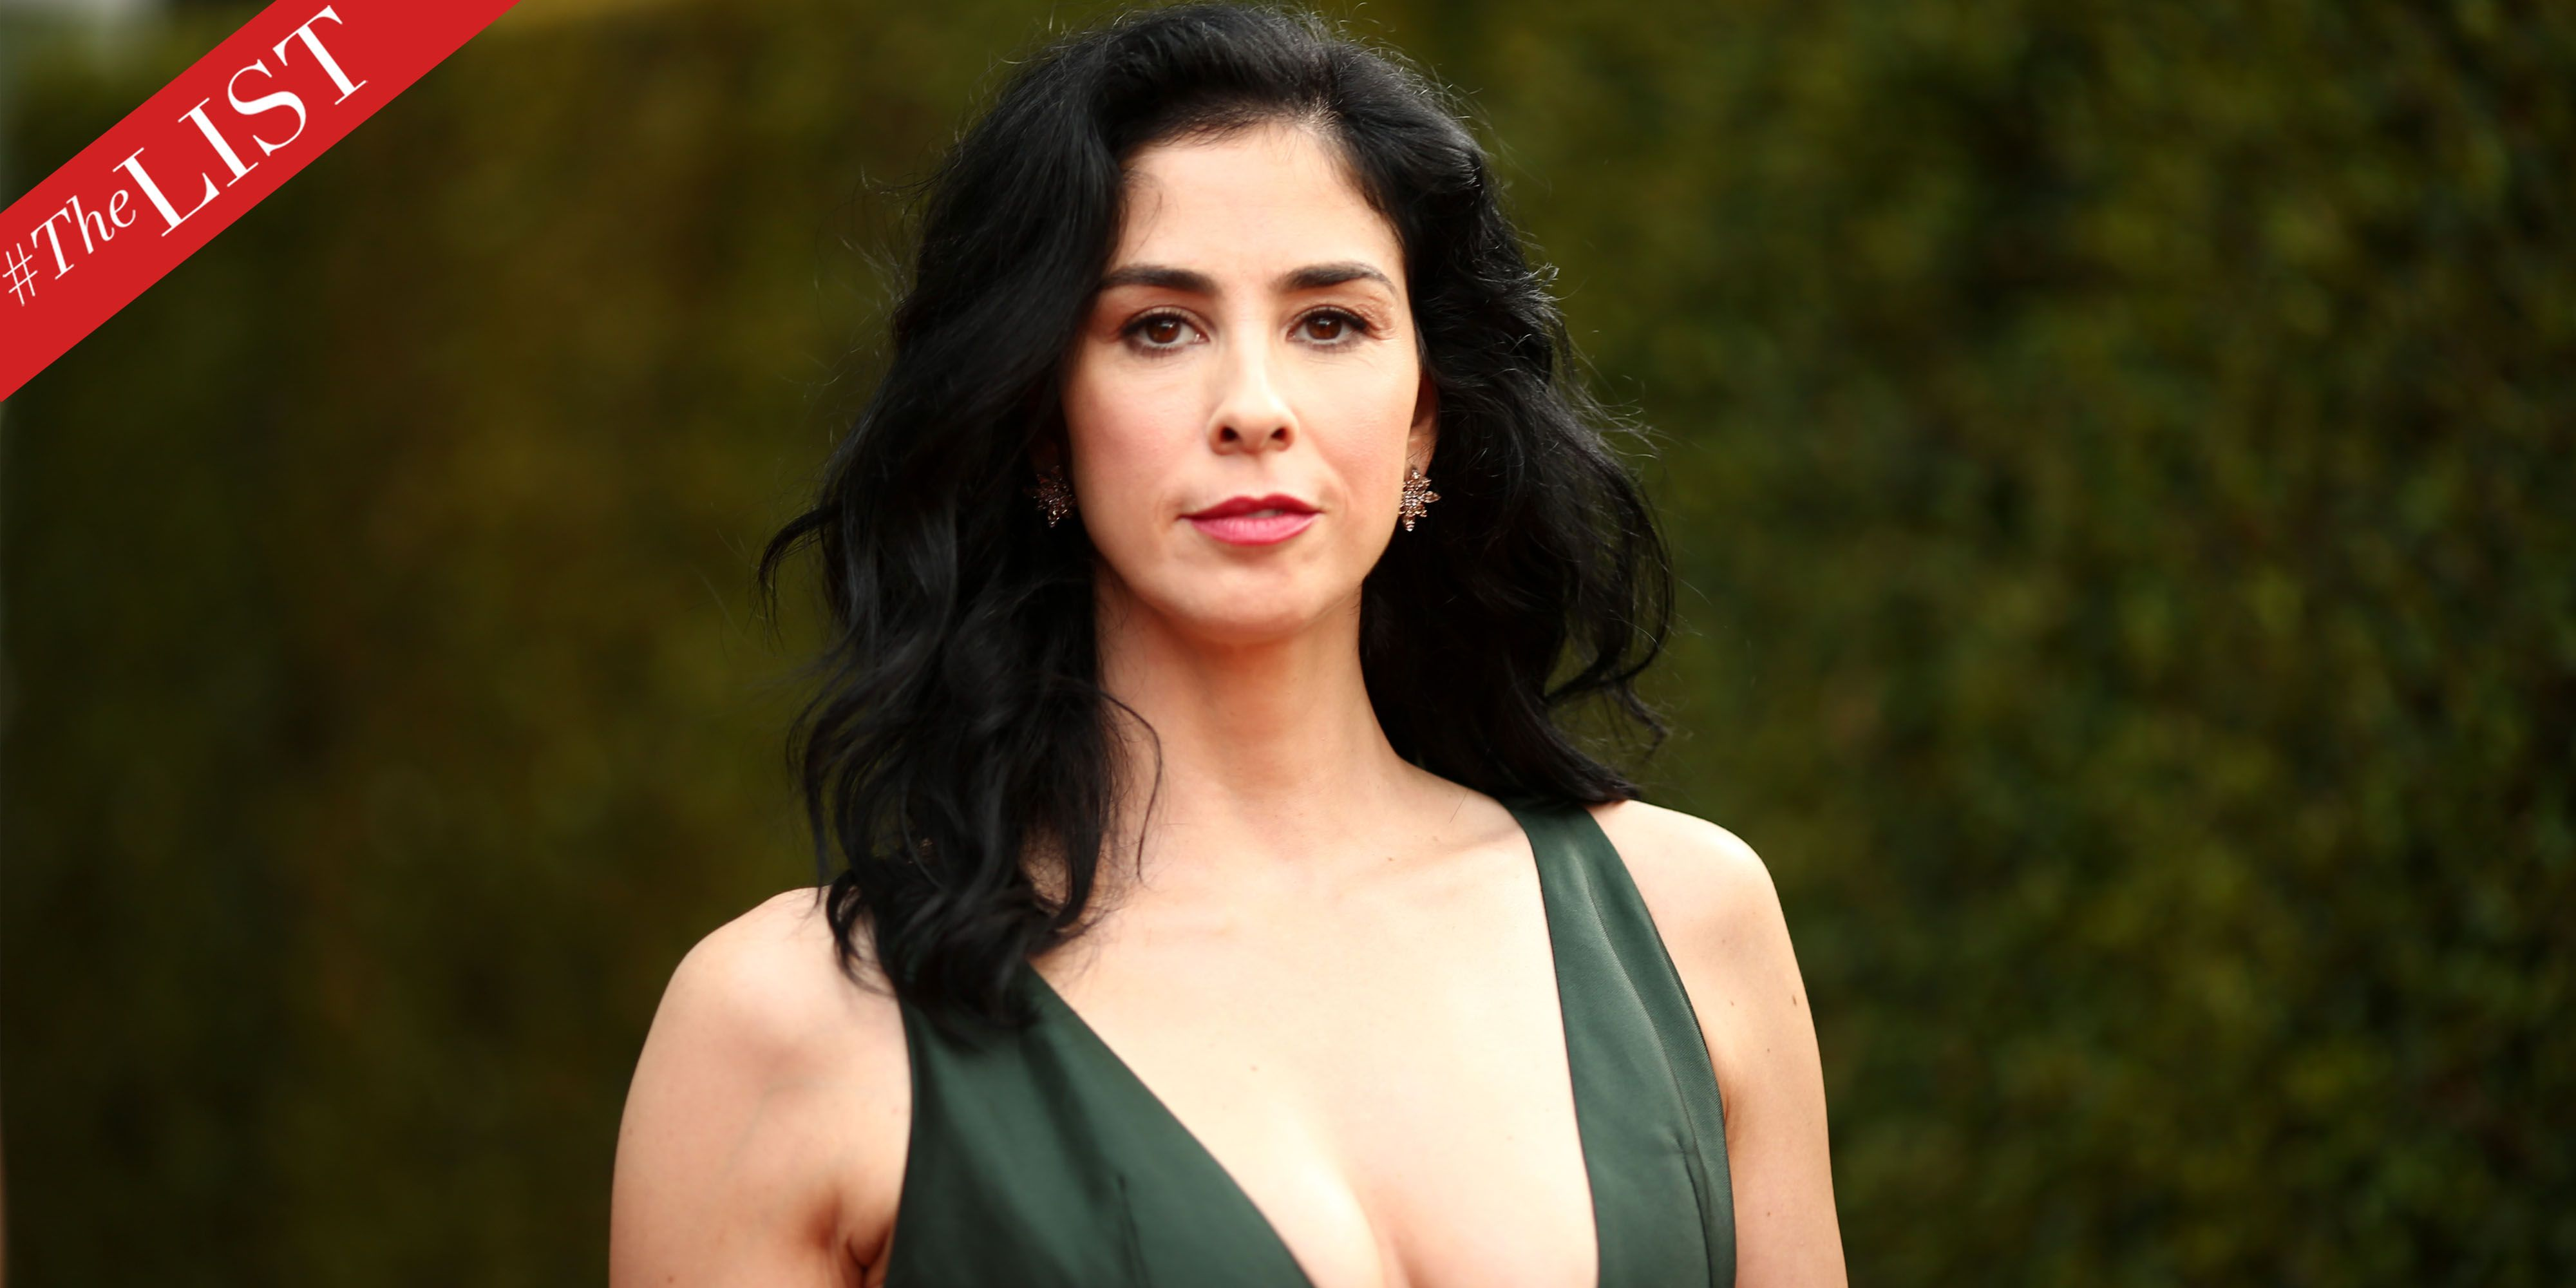 Fotos Sarah Silverman nudes (72 photo), Topless, Leaked, Twitter, panties 2020